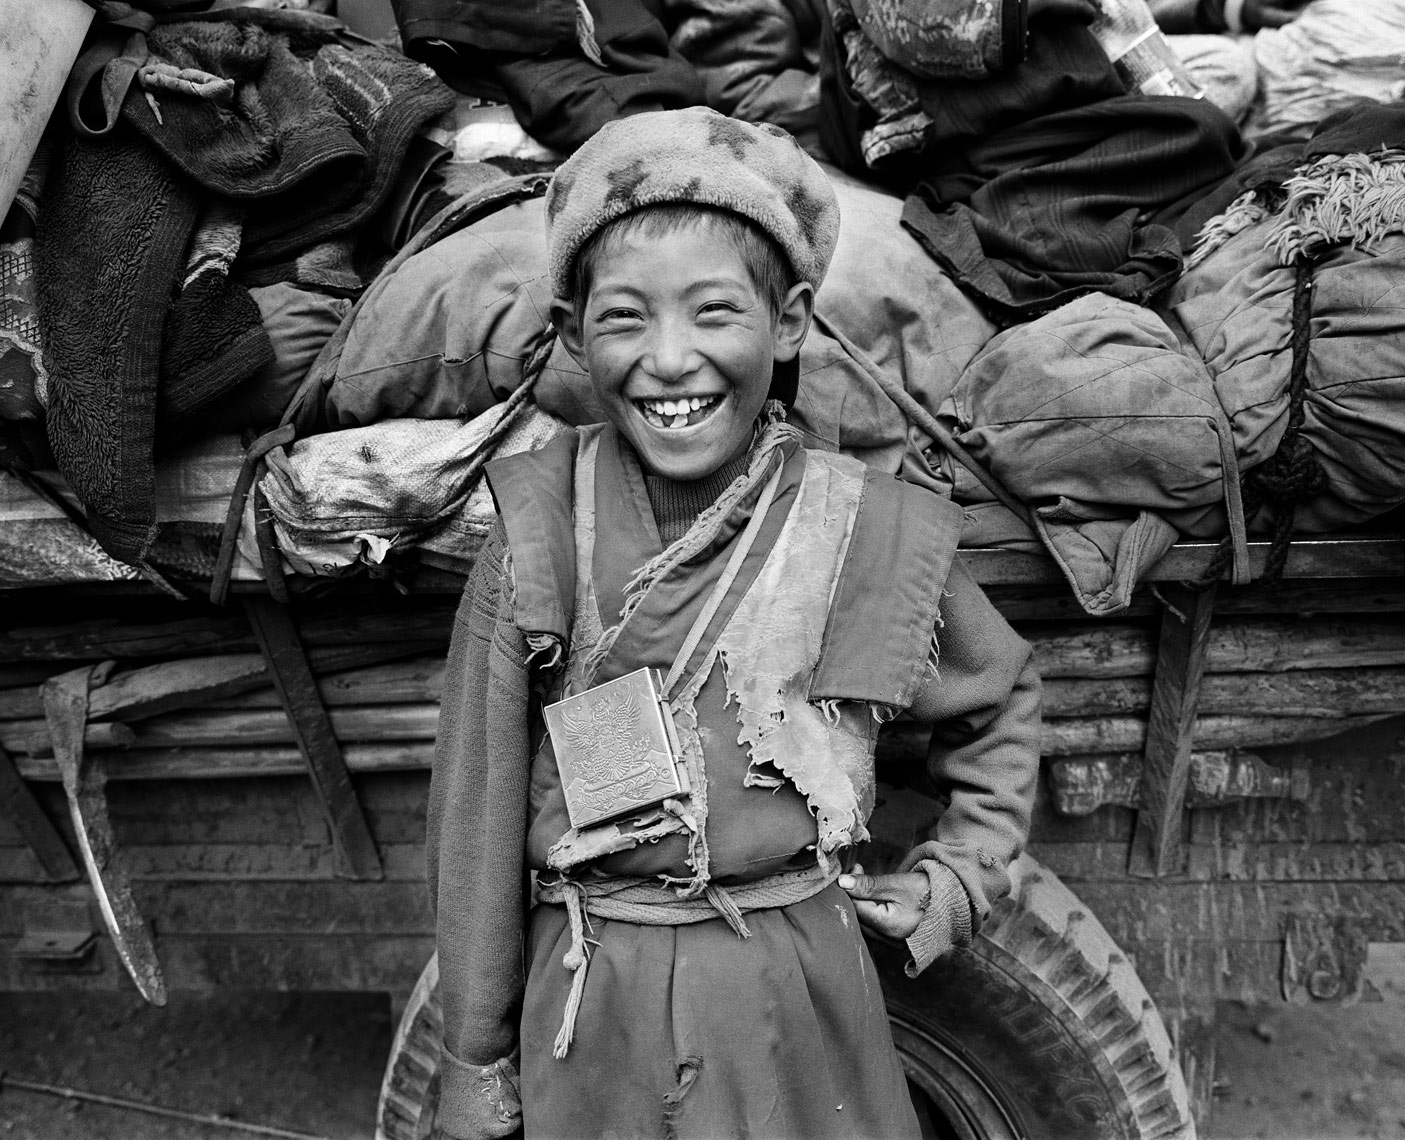 tibetan-boy-by-cart-print.jpg